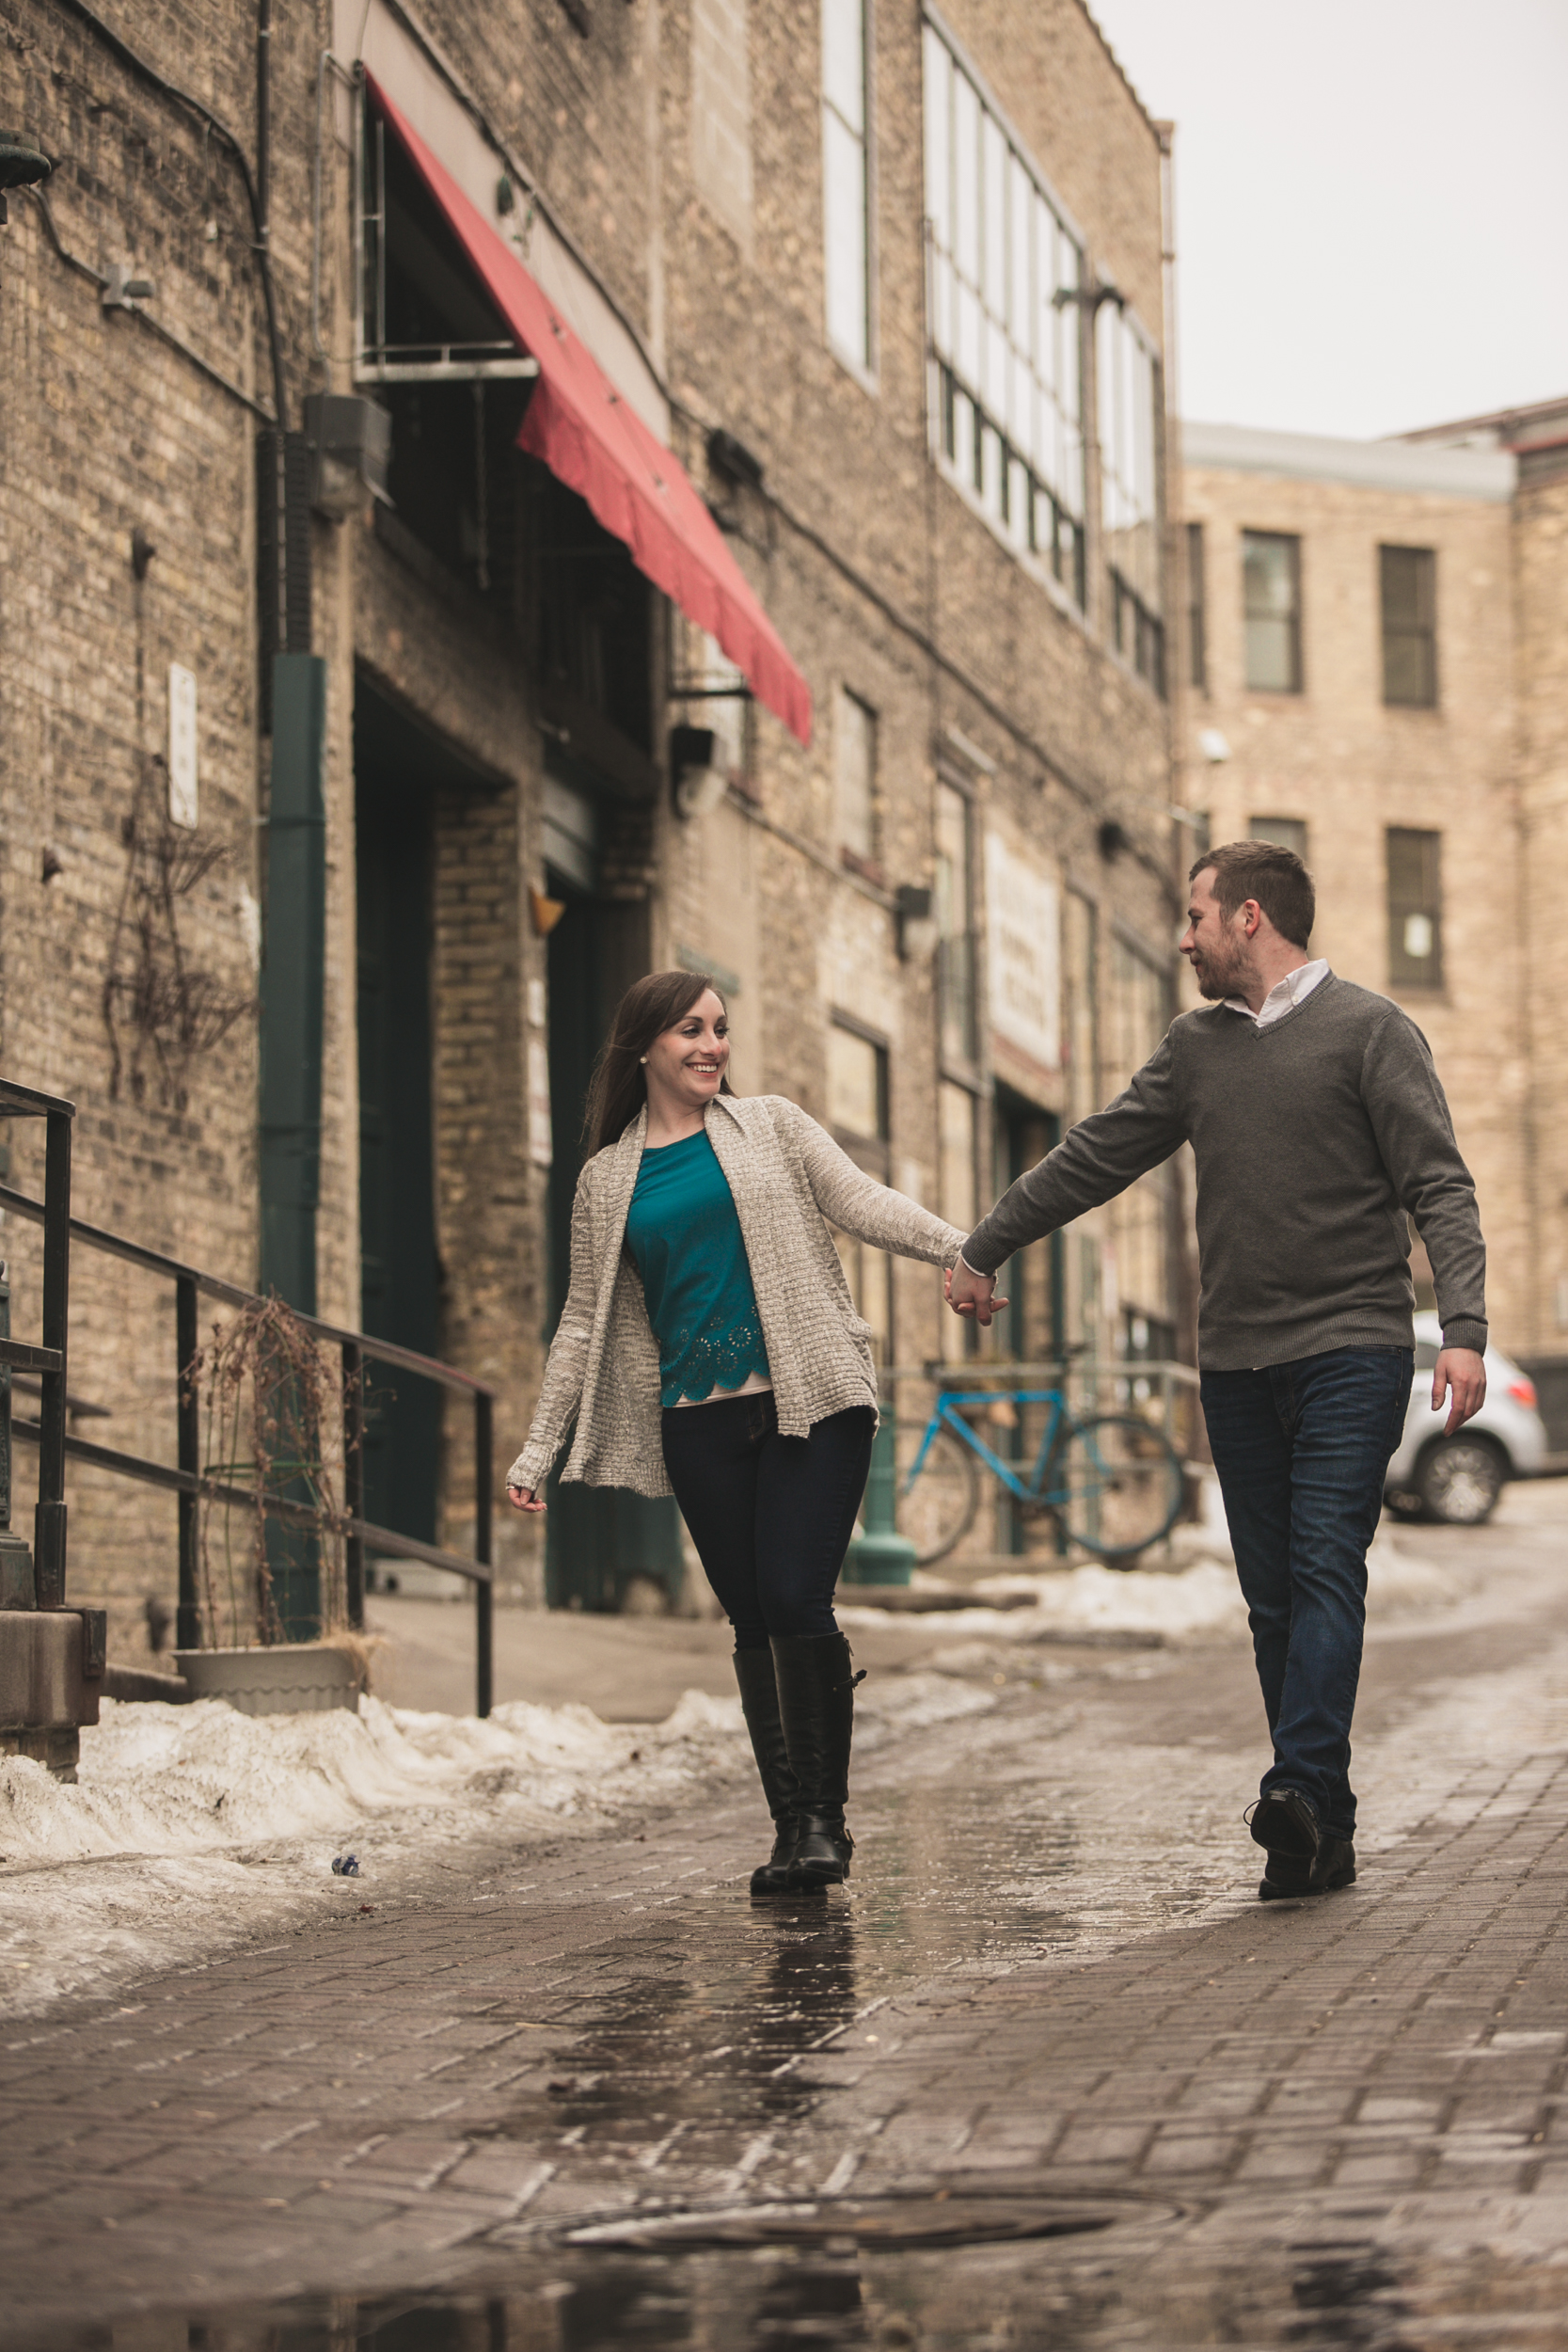 roller rink engagement session, wooddale fun zone engagement session, roller skate engagement session, minneapolis cafe lucrat engagment session, cafe lucrat engagement session, minneapolis minnesota engagement session-www.rachelsmak.com33.jpg